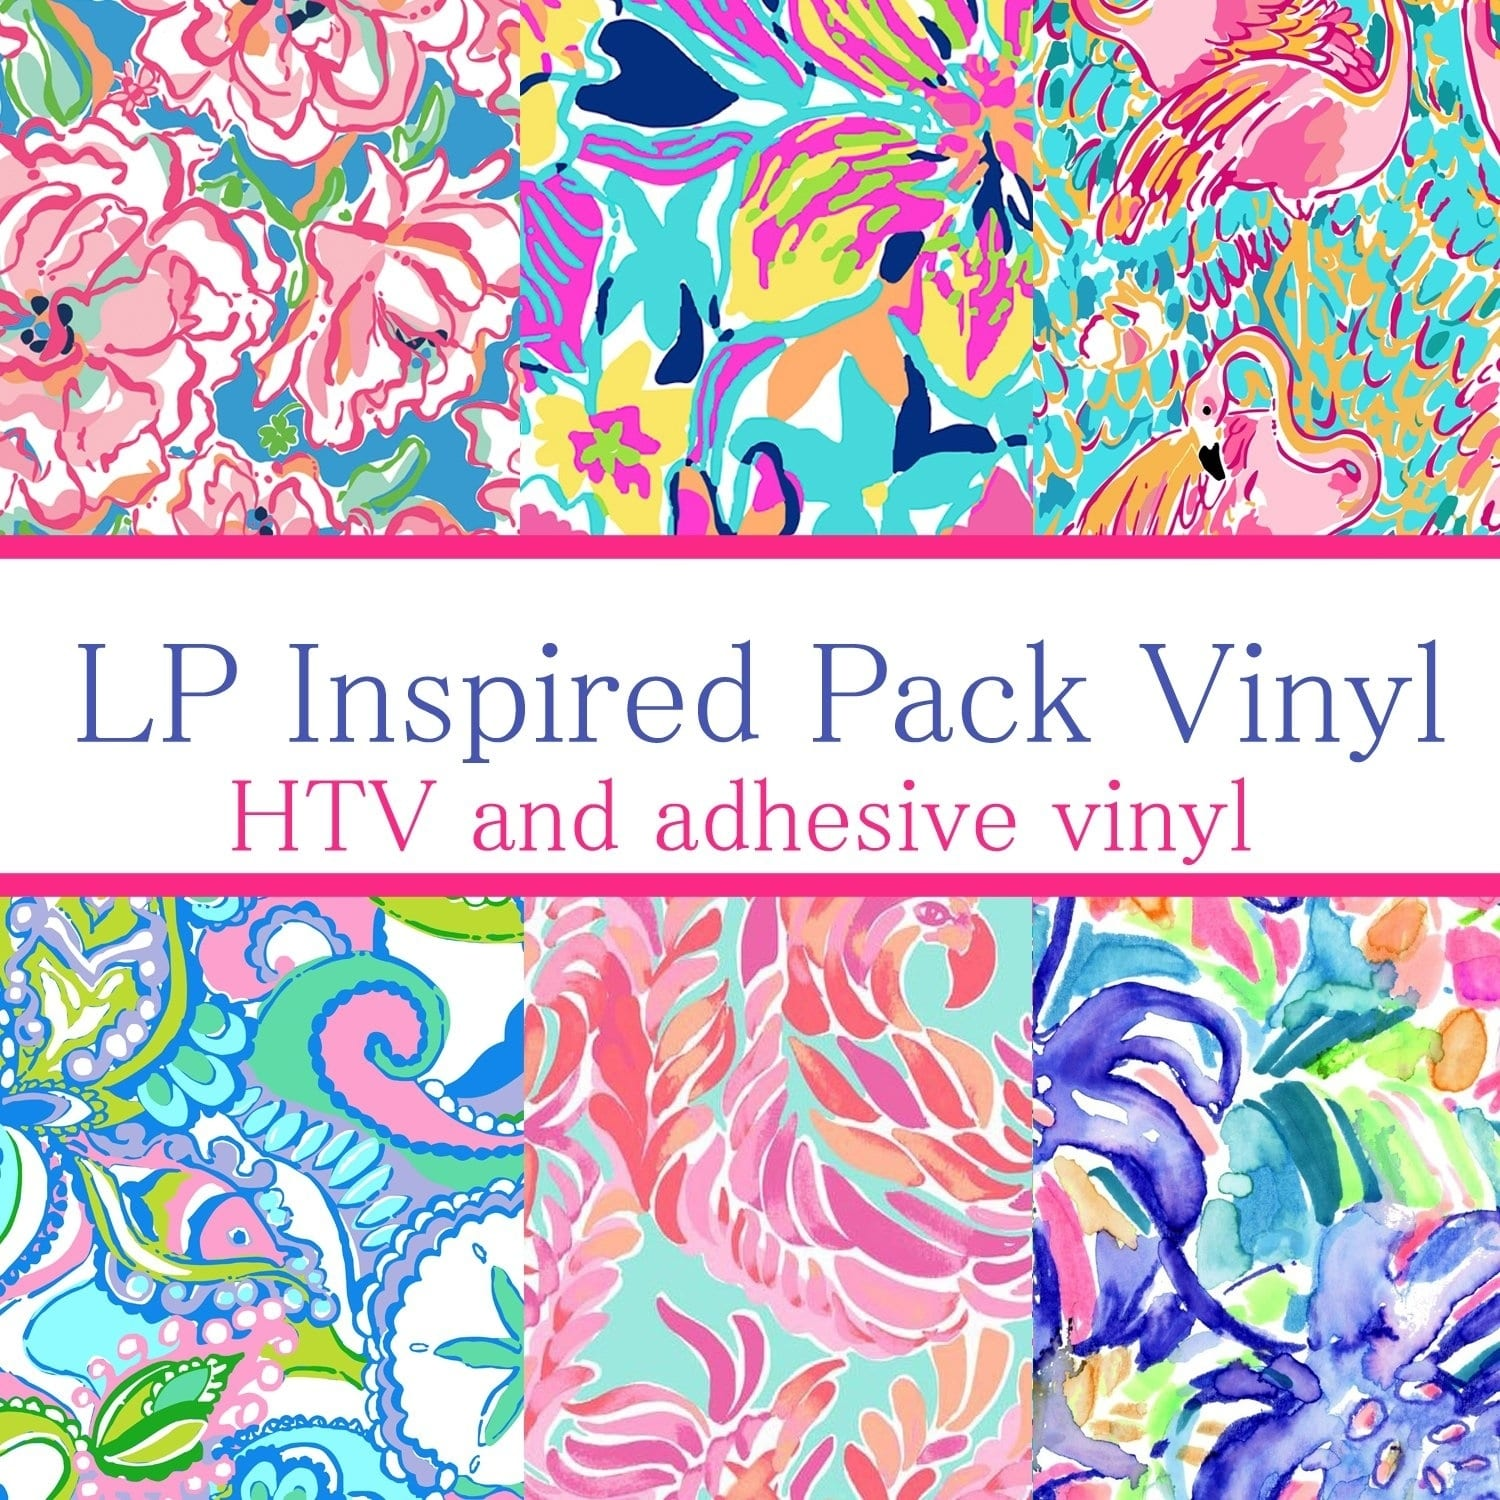 Vinyl Boutique Shop Craft vinyl Lilly Inspired vinyl Collection 3, PACK OF 6 sheets of VINYL